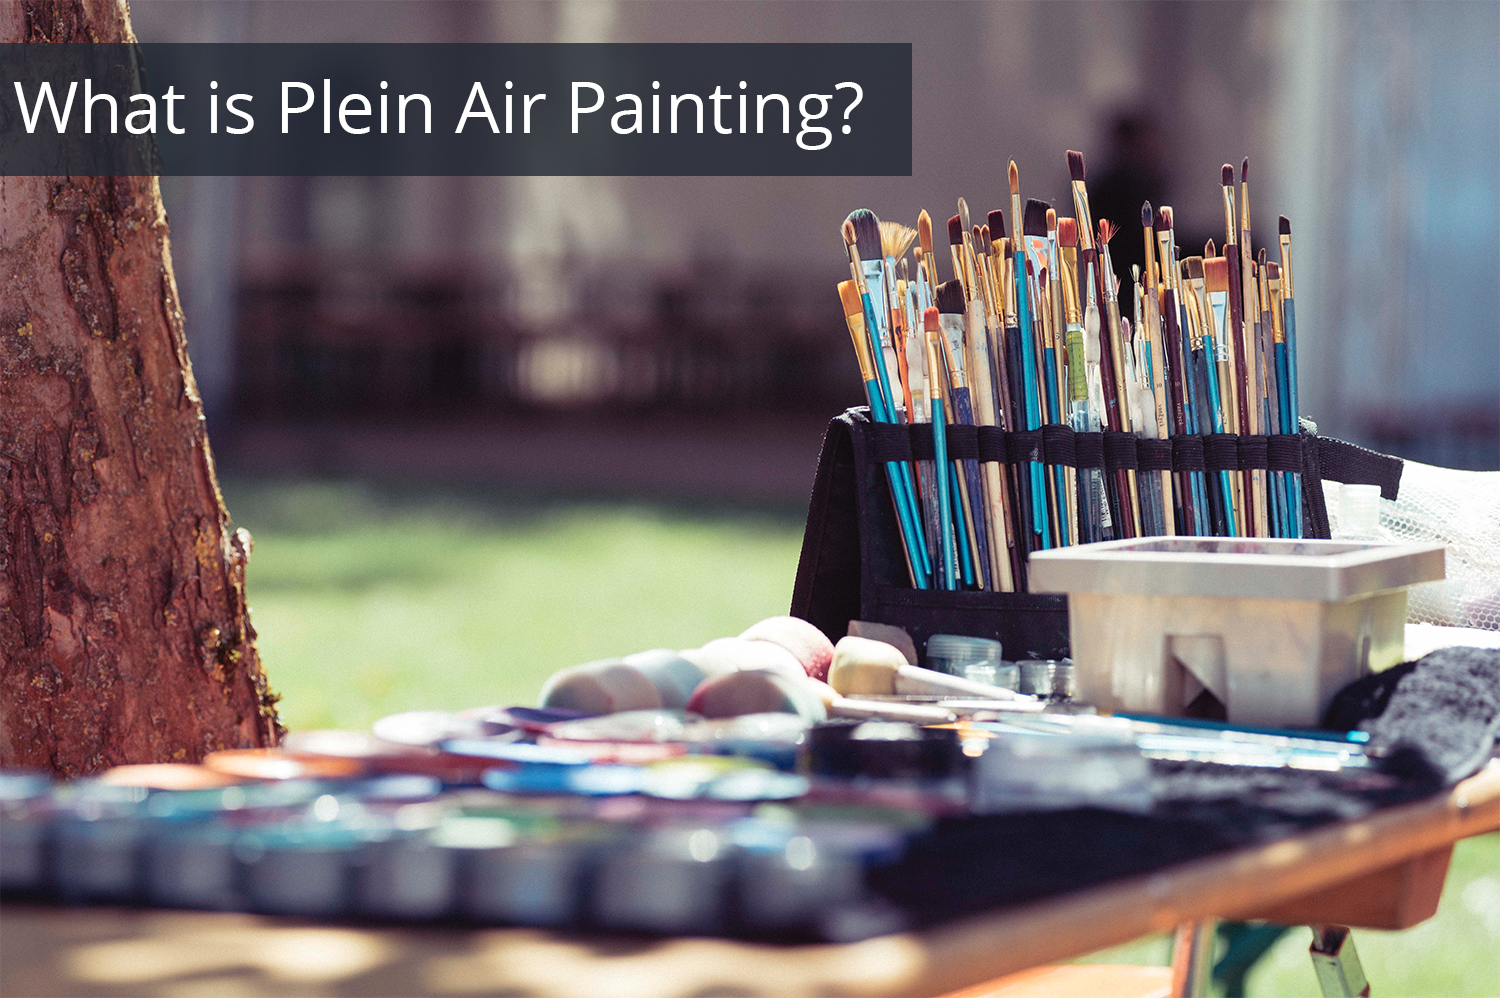 Paint, paint brushes, art supplies and a canvas on an easel set outside.